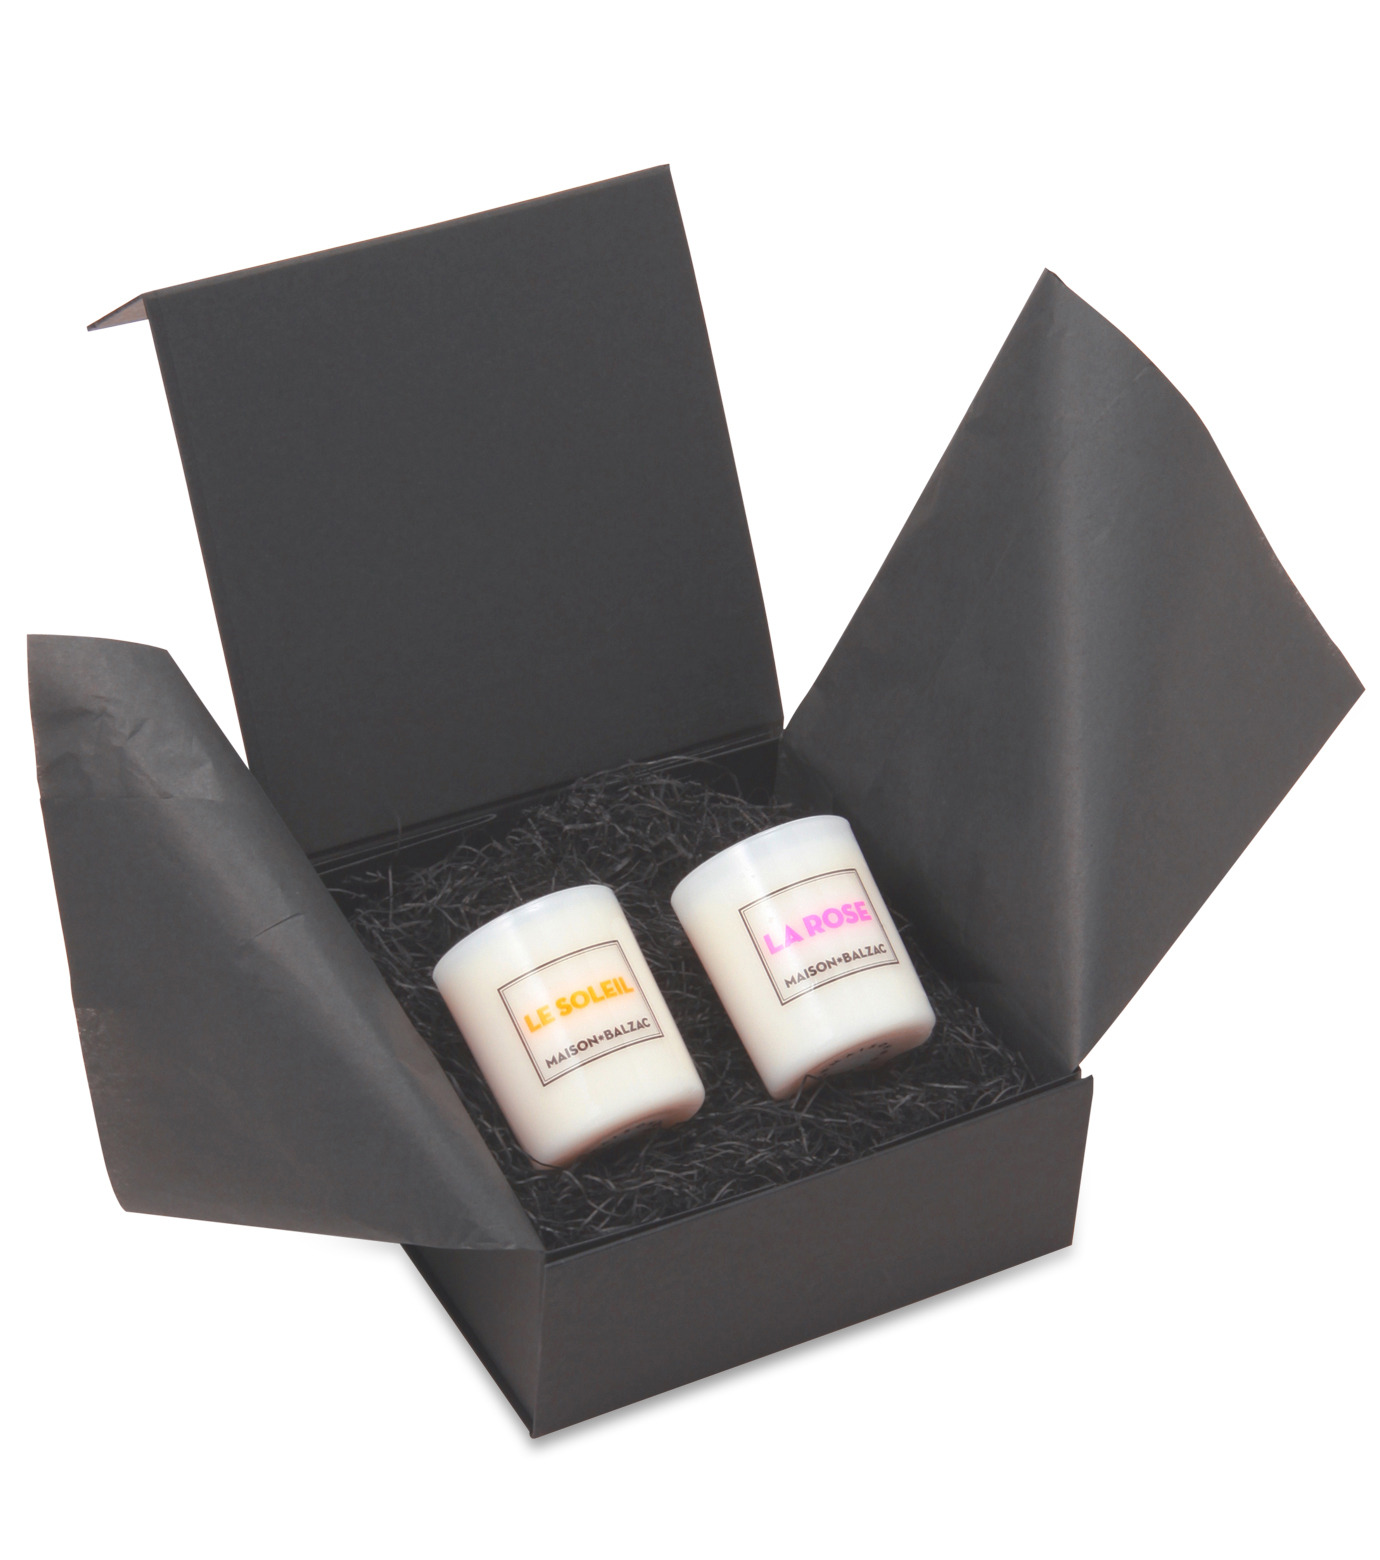 Gift Set(ギフトセット)のSoy candle-NONE-Giftset-can-0 拡大詳細画像1